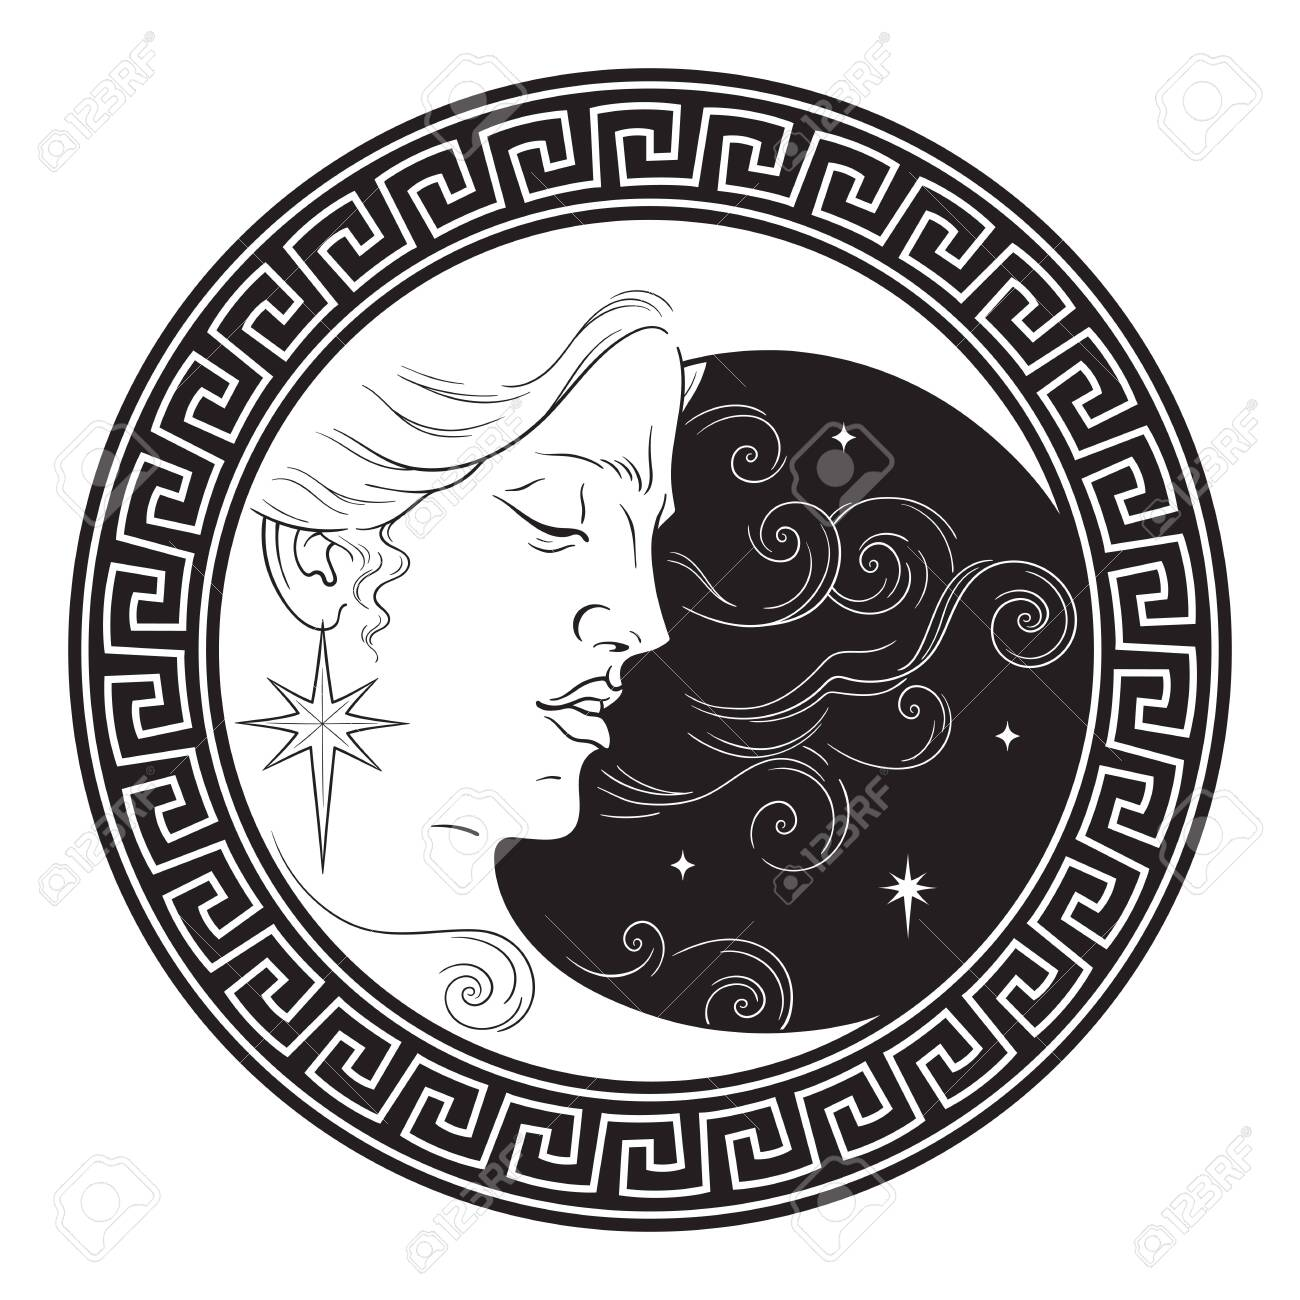 Crescent moon in antique style hand drawn line art boho chic art tattoo, poster, altar veil, tapestry or fabric print design vector illustration - 145667493